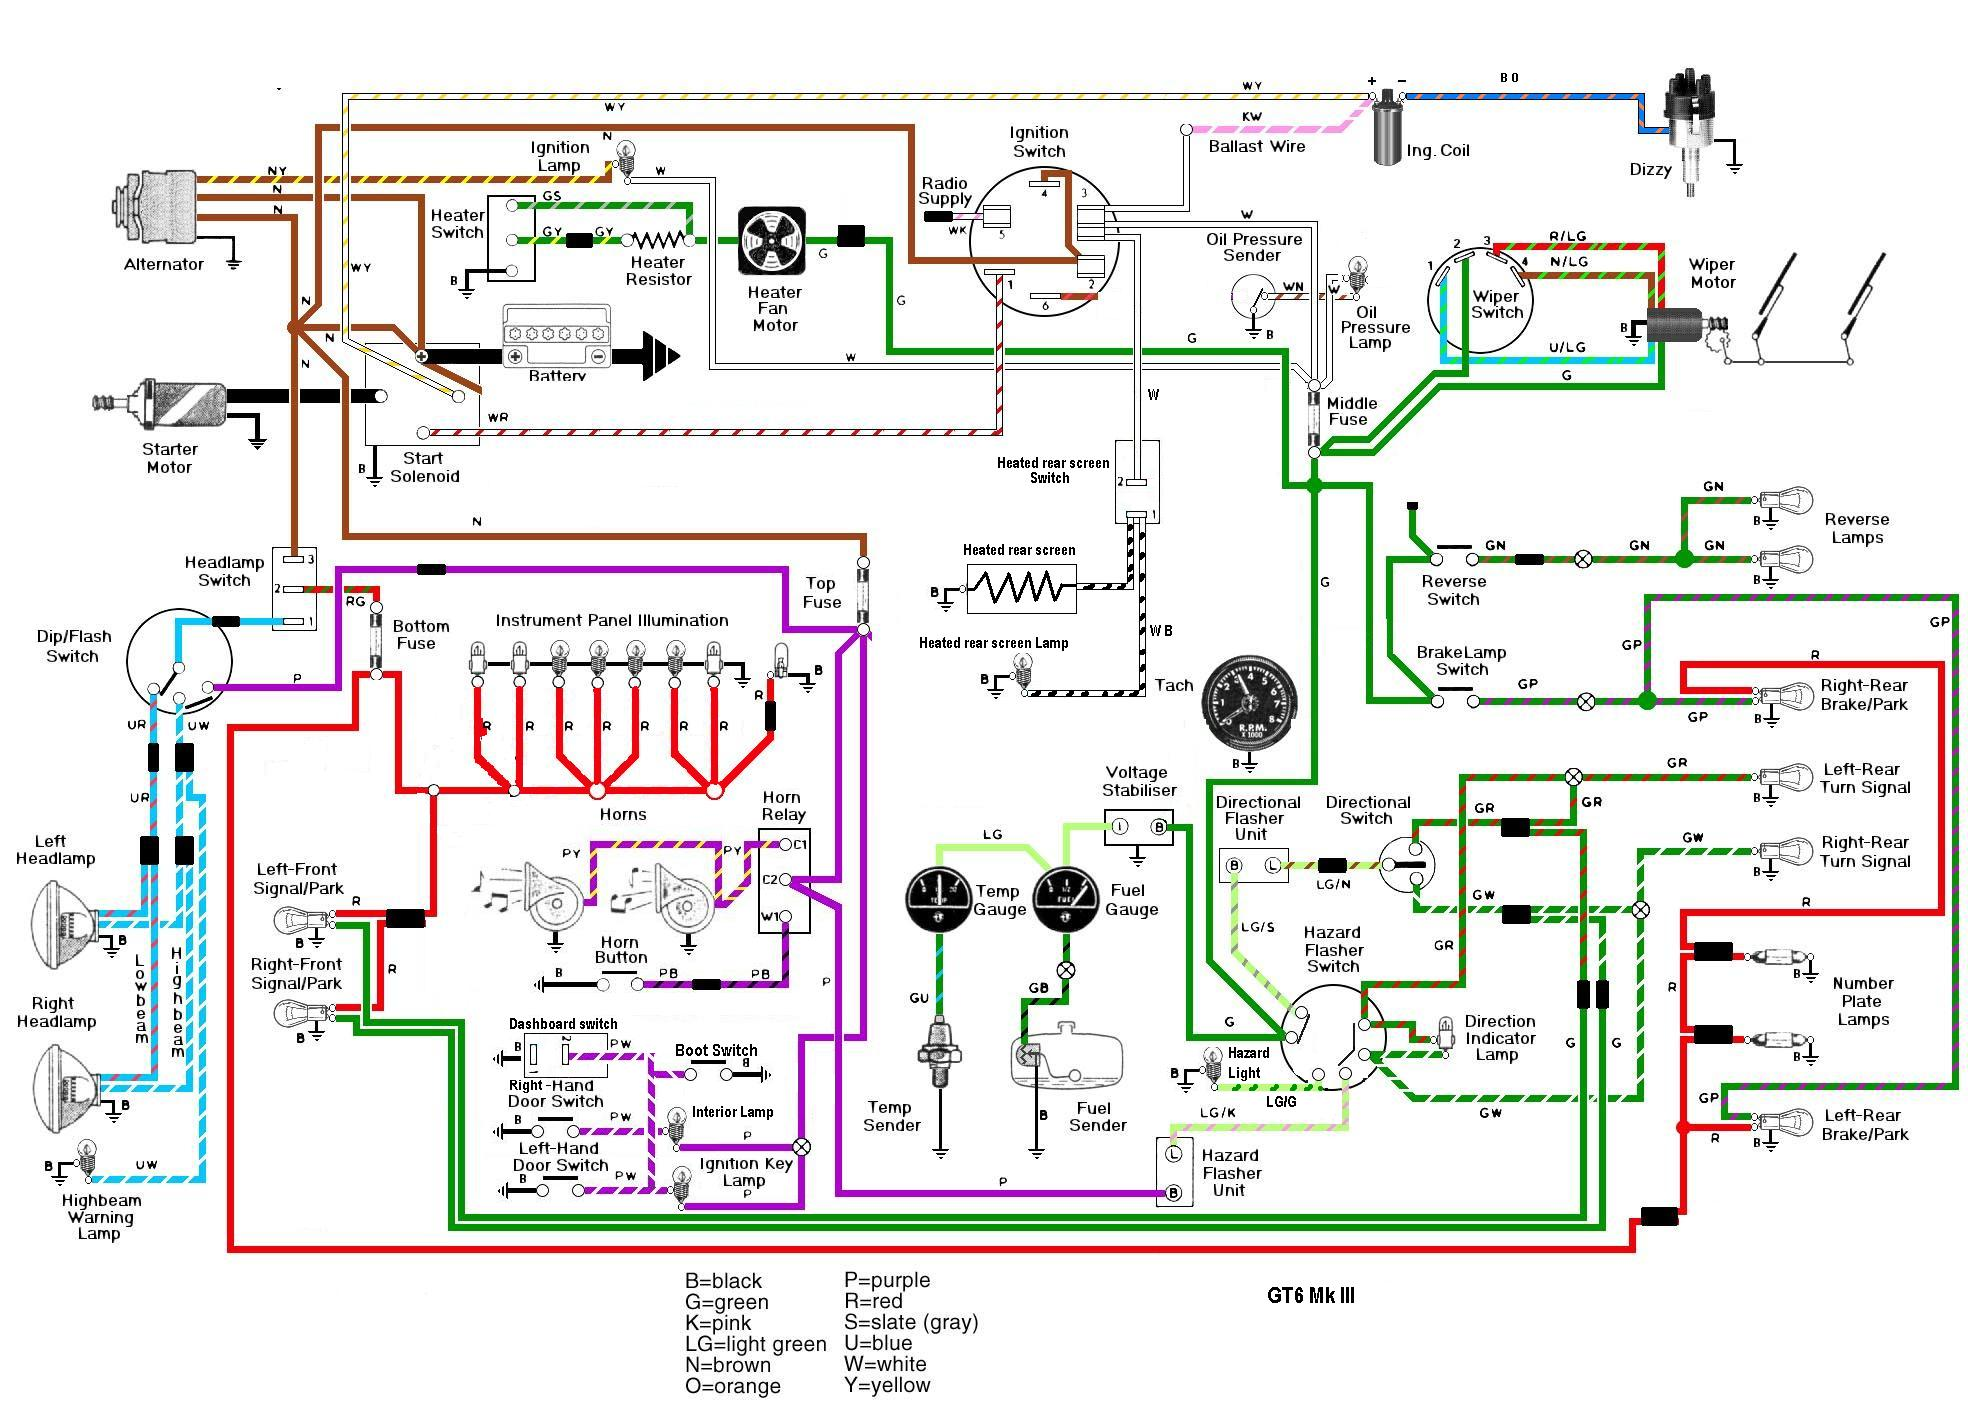 Gt6 Wiring Diagram - Wiring Diagram Progresif on radio wiring diagram, third brake light wiring diagram, wiper switch motor, wiper switch wire color, door wiring diagram, oil pump wiring diagram, throttle cable wiring diagram, throttle body wiring diagram, speedometer wiring diagram, rv electrical system wiring diagram, transmission wiring diagram, fan clutch wiring diagram, heater motor wiring diagram, wiper switch parts diagram, relay wiring diagram, instrument cluster wiring diagram, alternator wiring diagram, starter solenoid wiring diagram, window motor wiring diagram, ignition module wiring diagram,